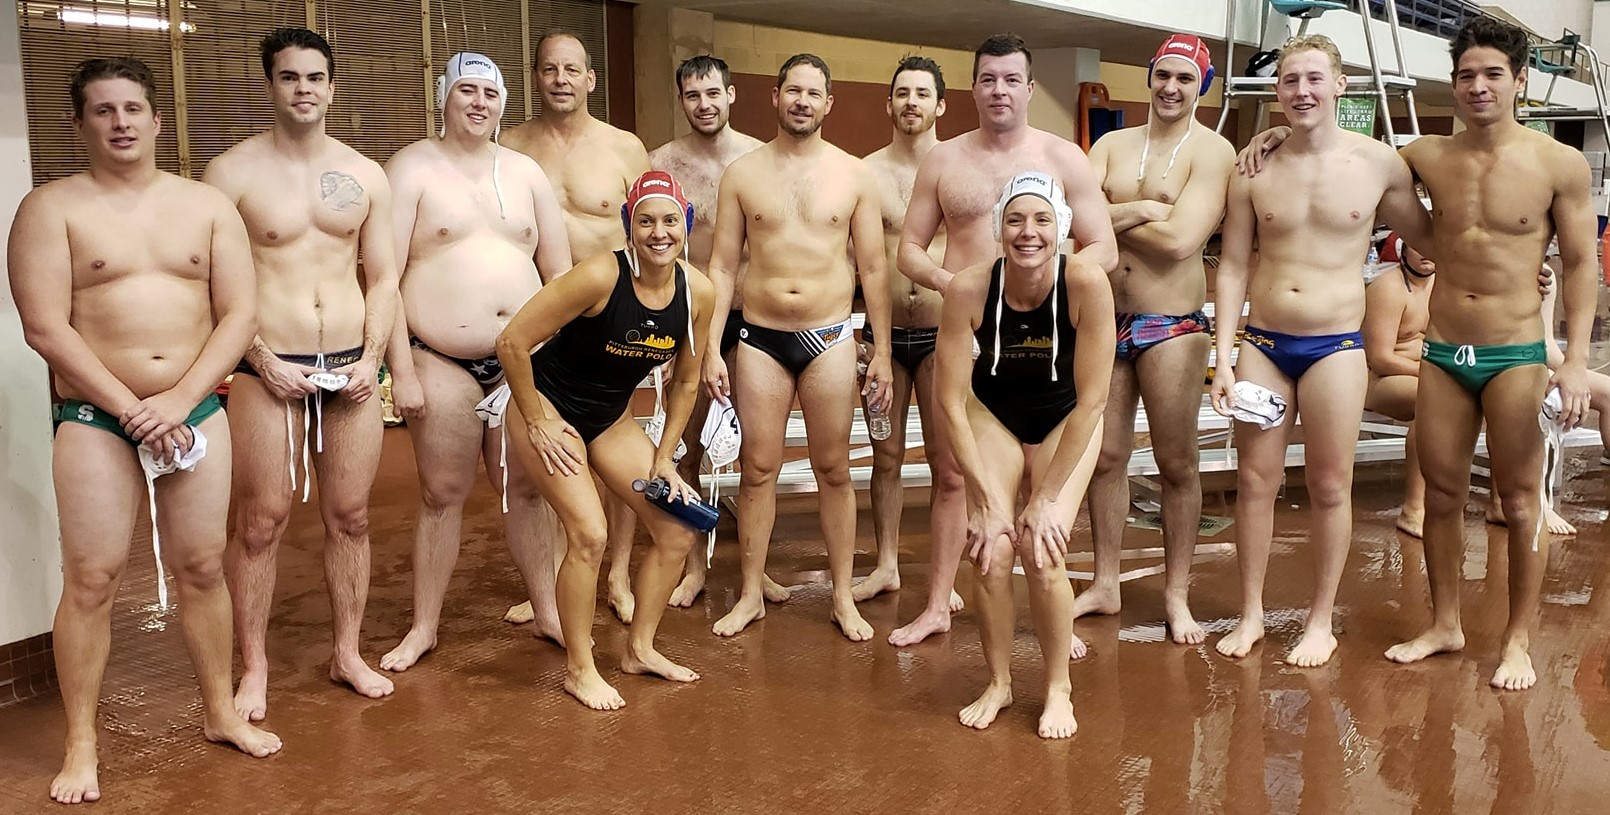 Renegades water polo team in Cleveland